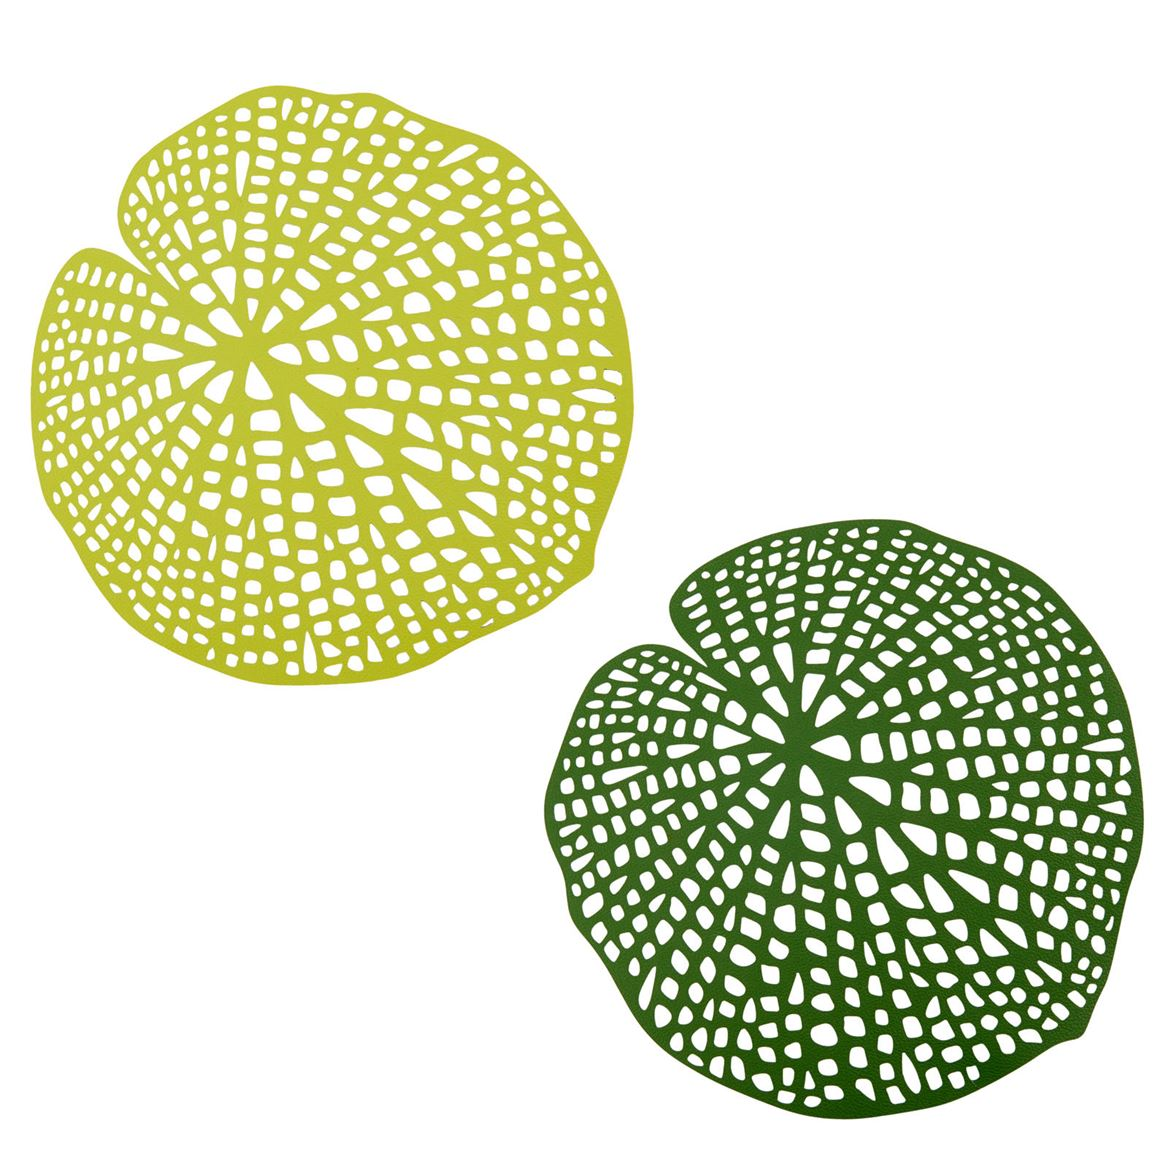 WATER LILY Placemat groen B 38 x L 38 cm_water-lily-placemat-groen-b-38-x-l-38-cm